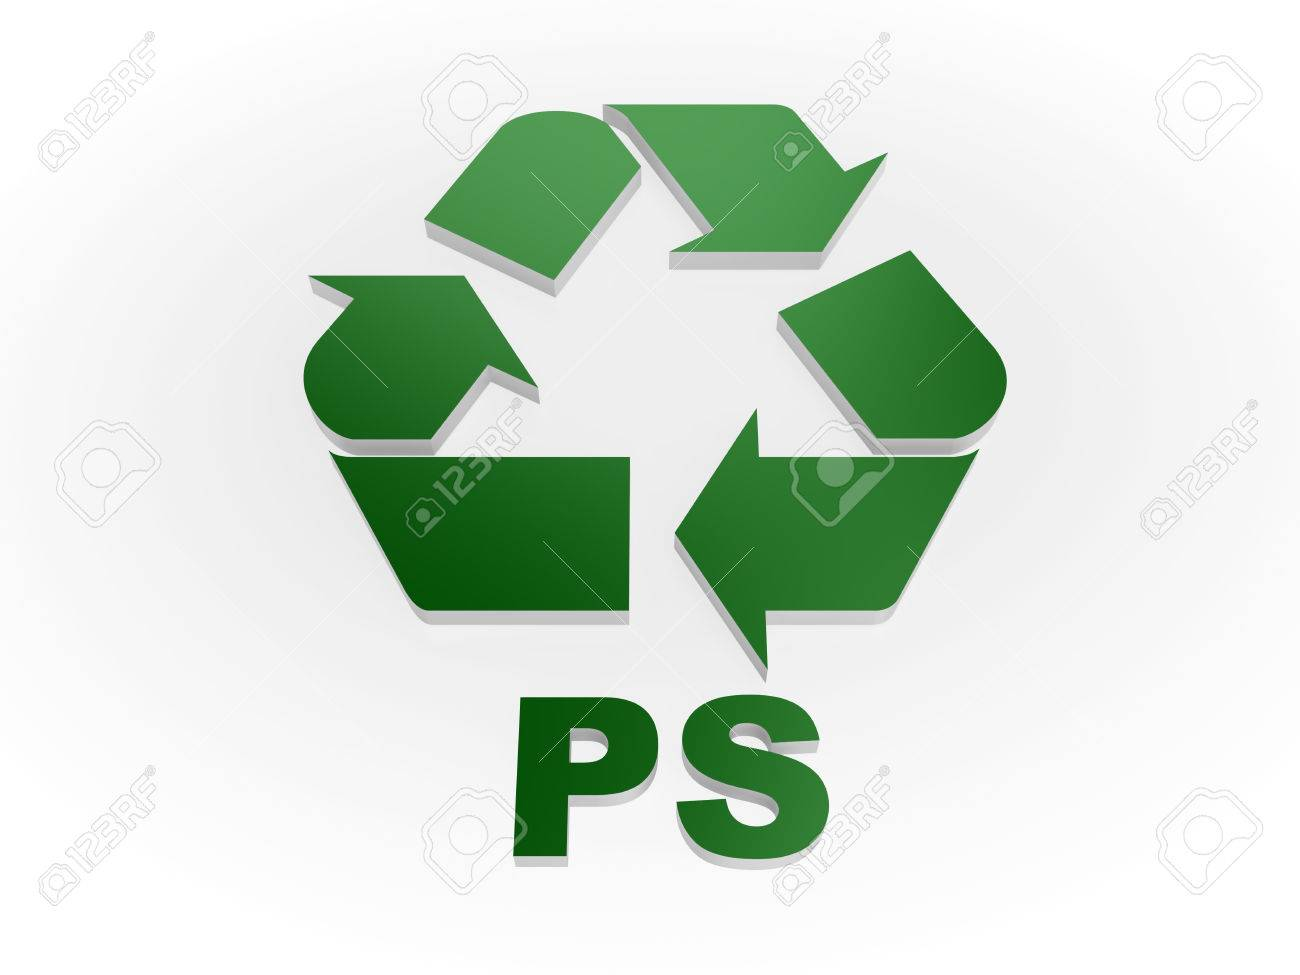 Recycle ps sign recycling codes polystyrene stock photo picture recycle ps sign recycling codes polystyrene stock photo 50083159 buycottarizona